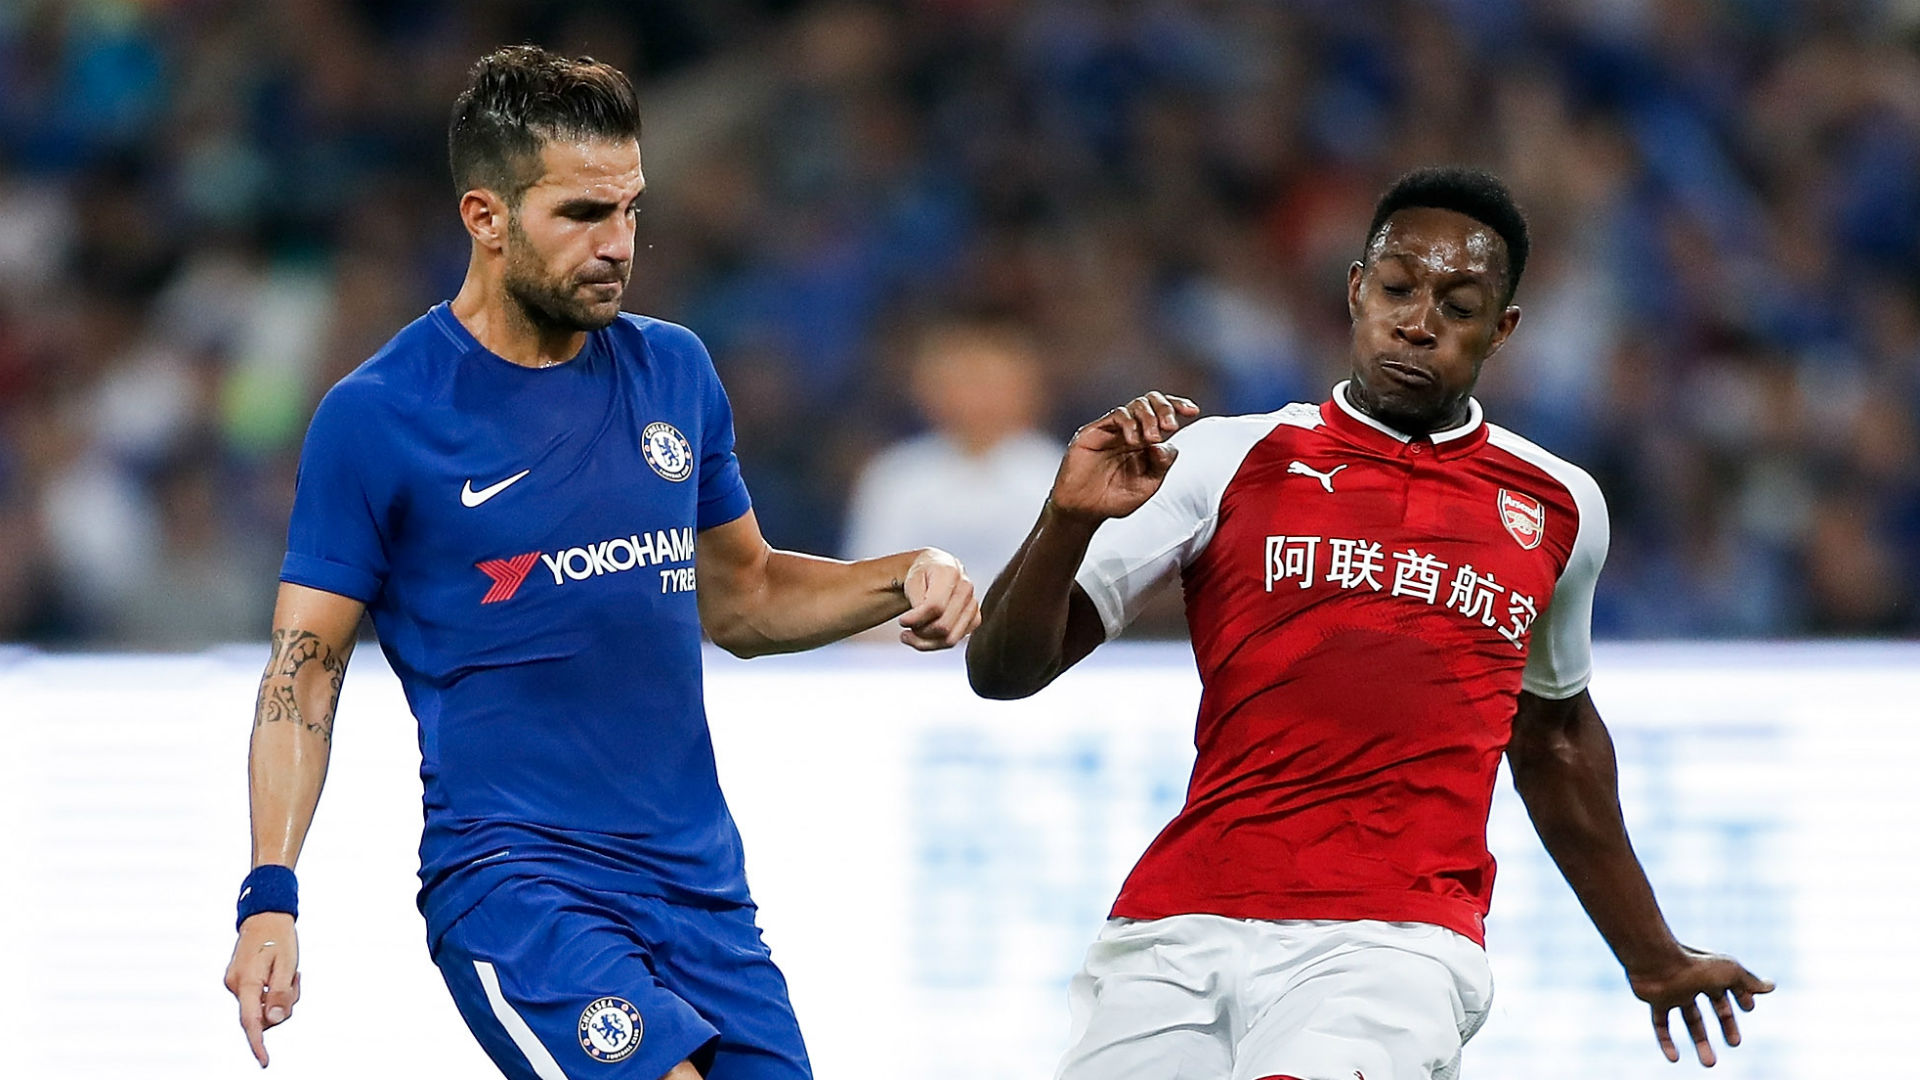 Image Result For Chelsea Vs Arsenal Live Streaming Bein Sport